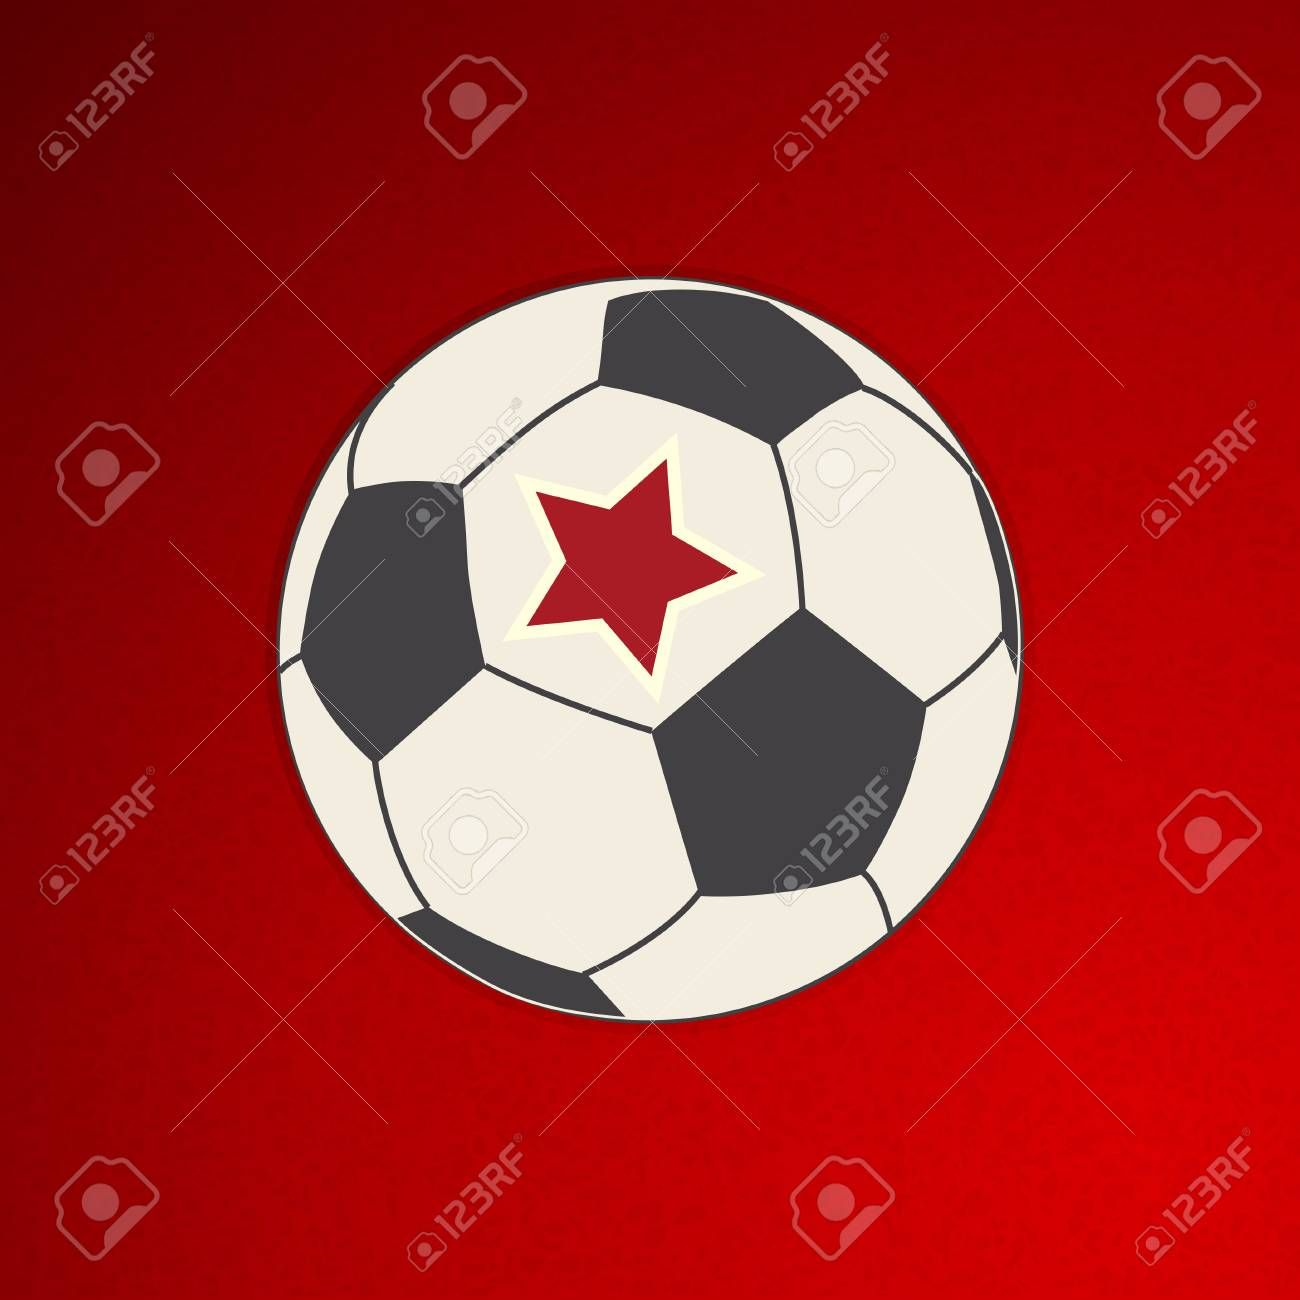 Hand Drawing Style Football Soccer Ball With Red Star Over Textured Red Background Ad Football How To Draw Hands Soccer Ball Photography Backdrop Stand